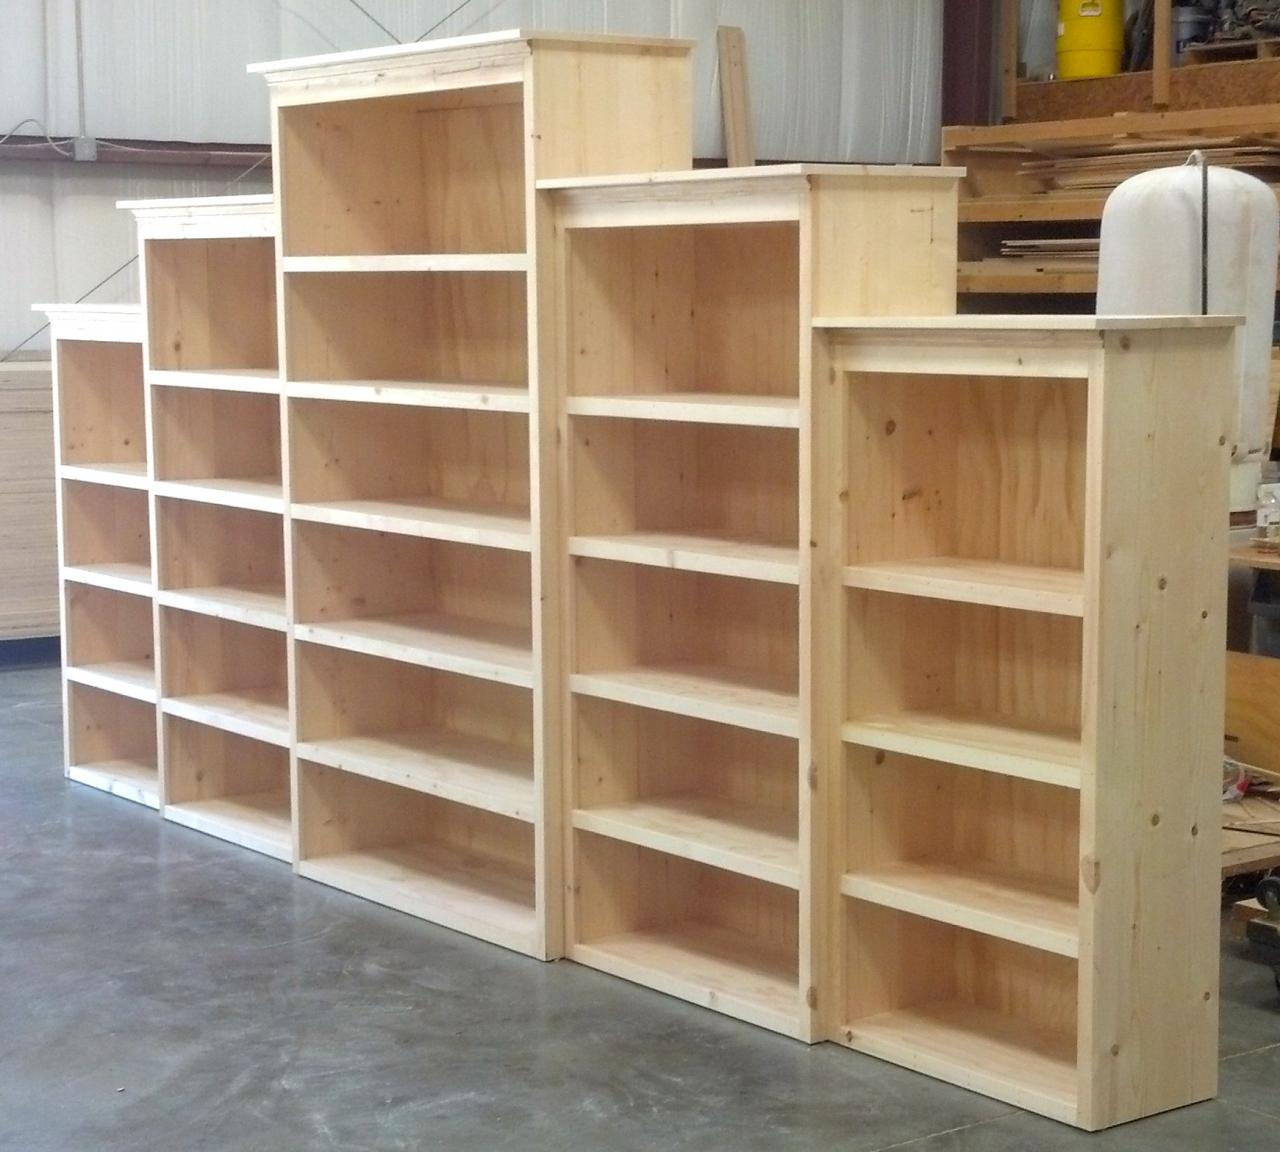 Rustic Wood Retail Store Product Display Fixtures amp Shelving Idea Photo Gallery Bookcase